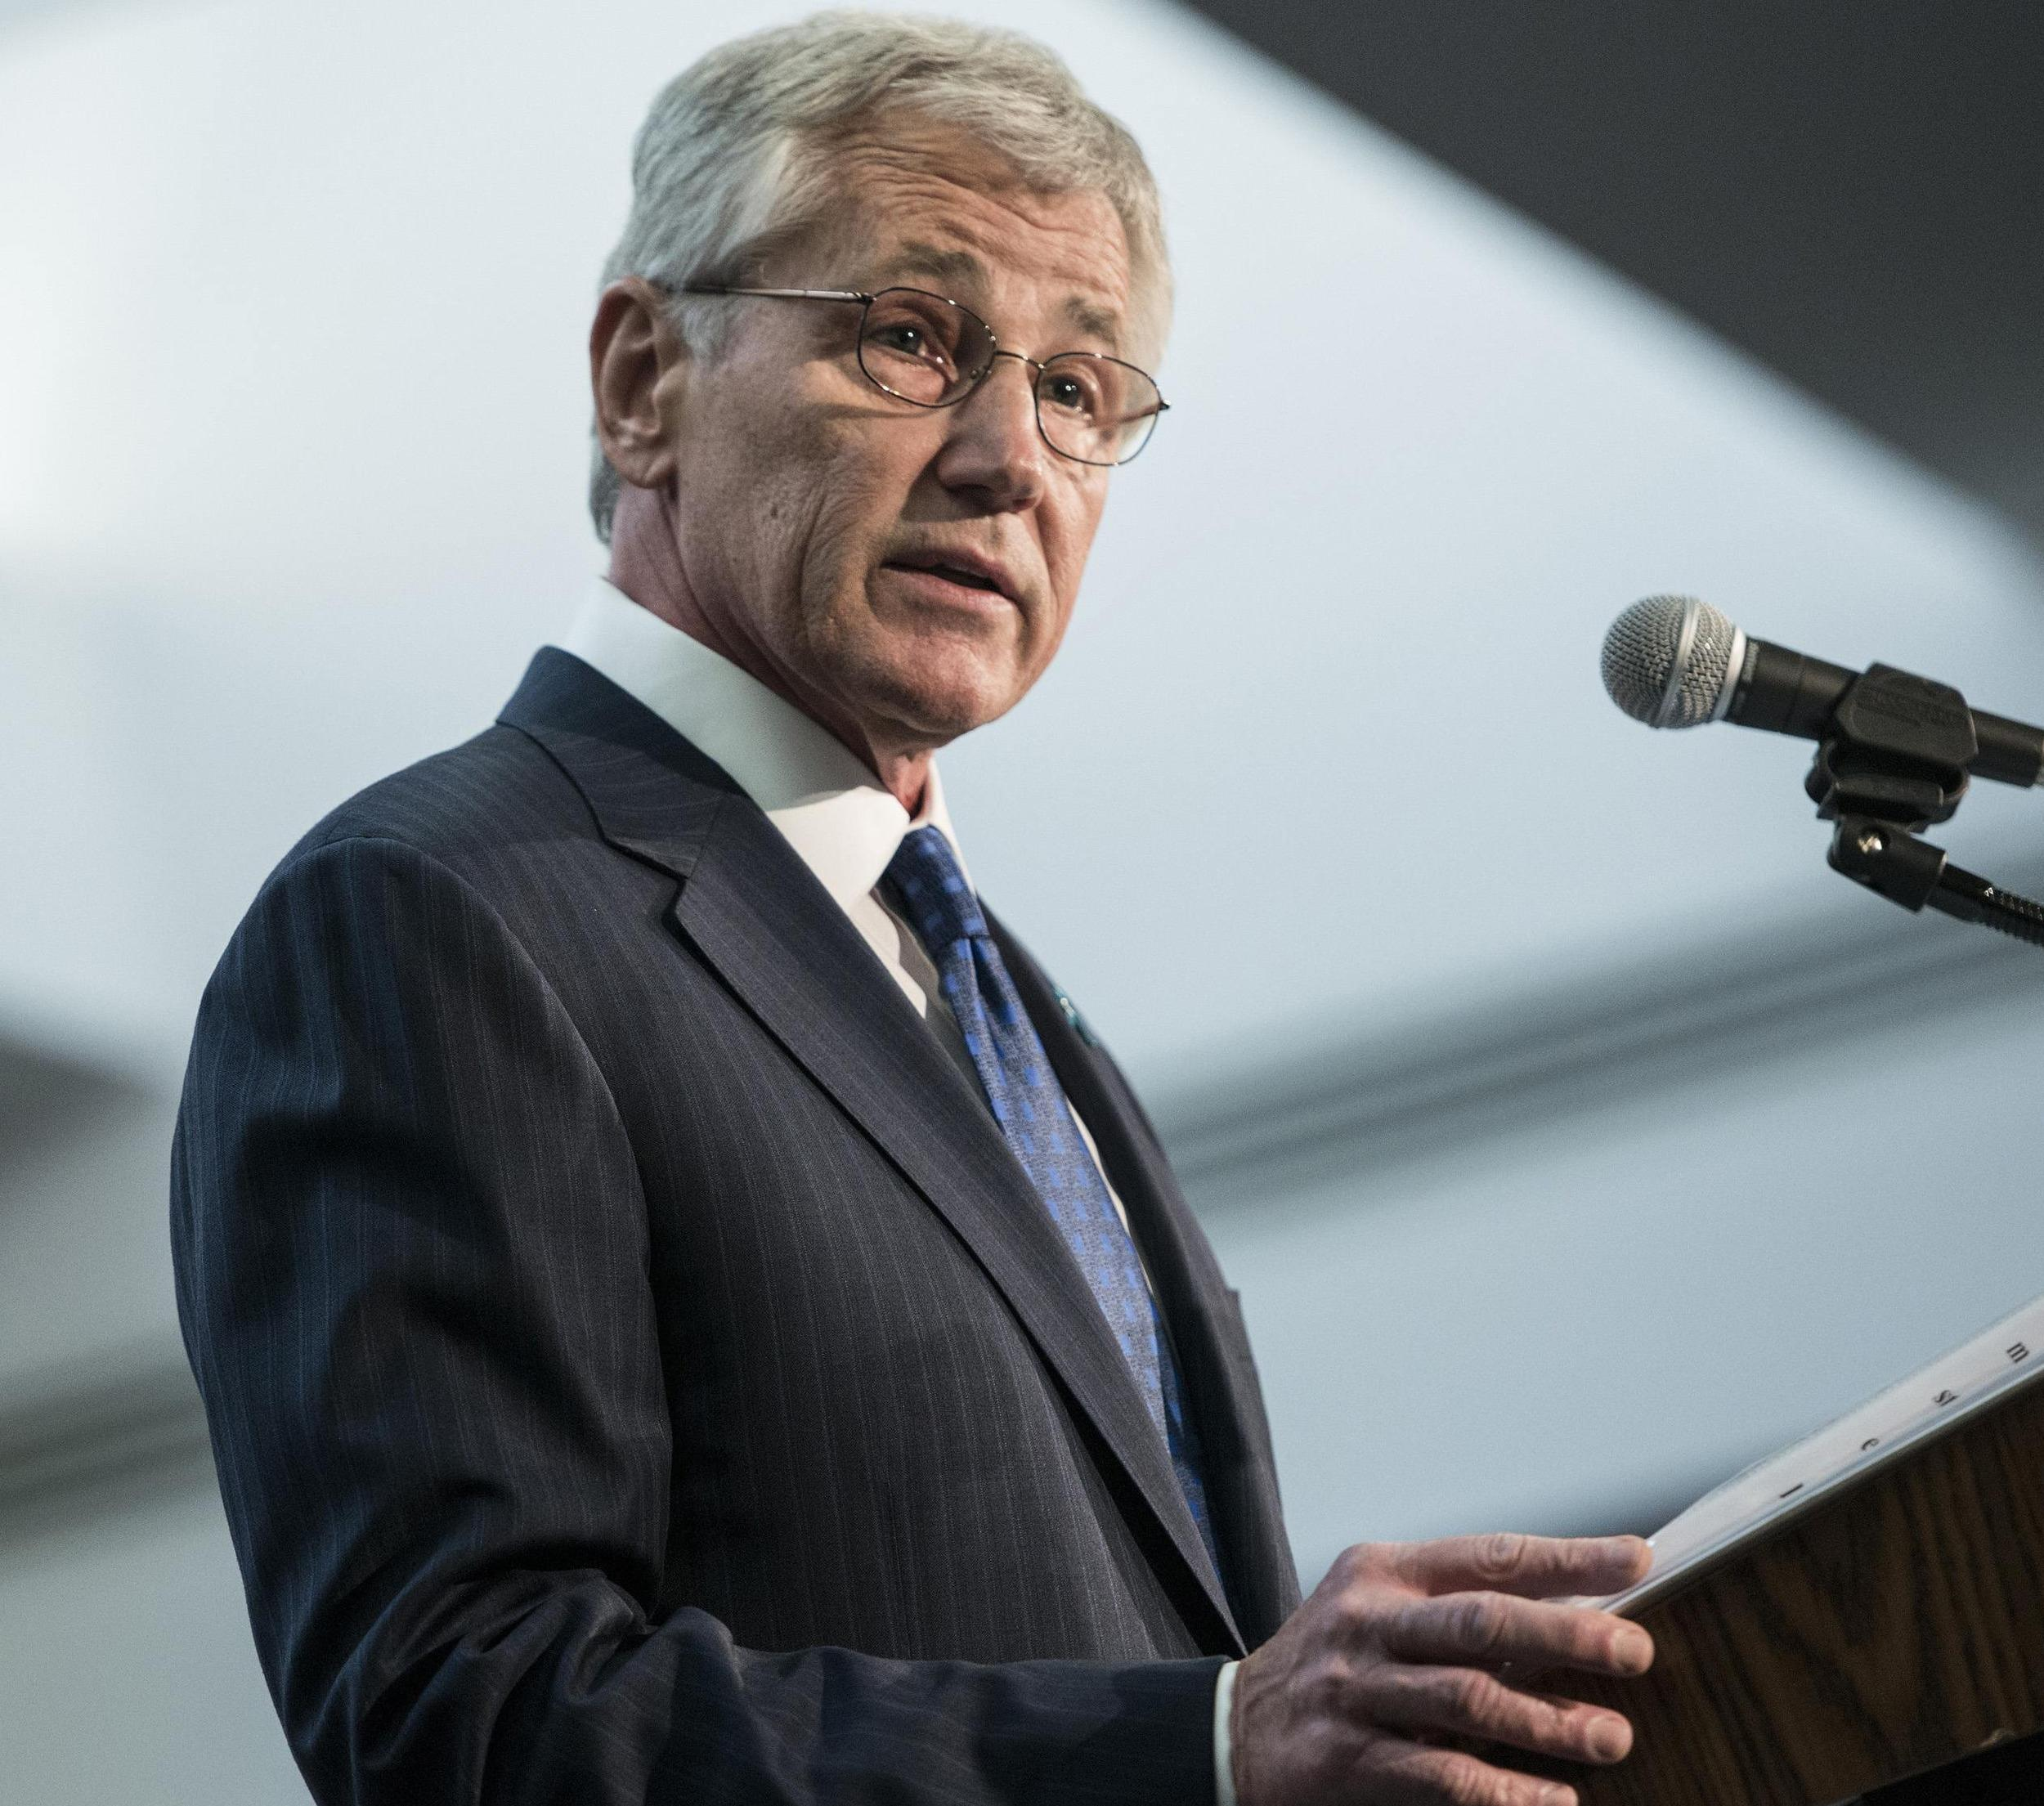 Image: U.S. Secretary of Defense Hagel